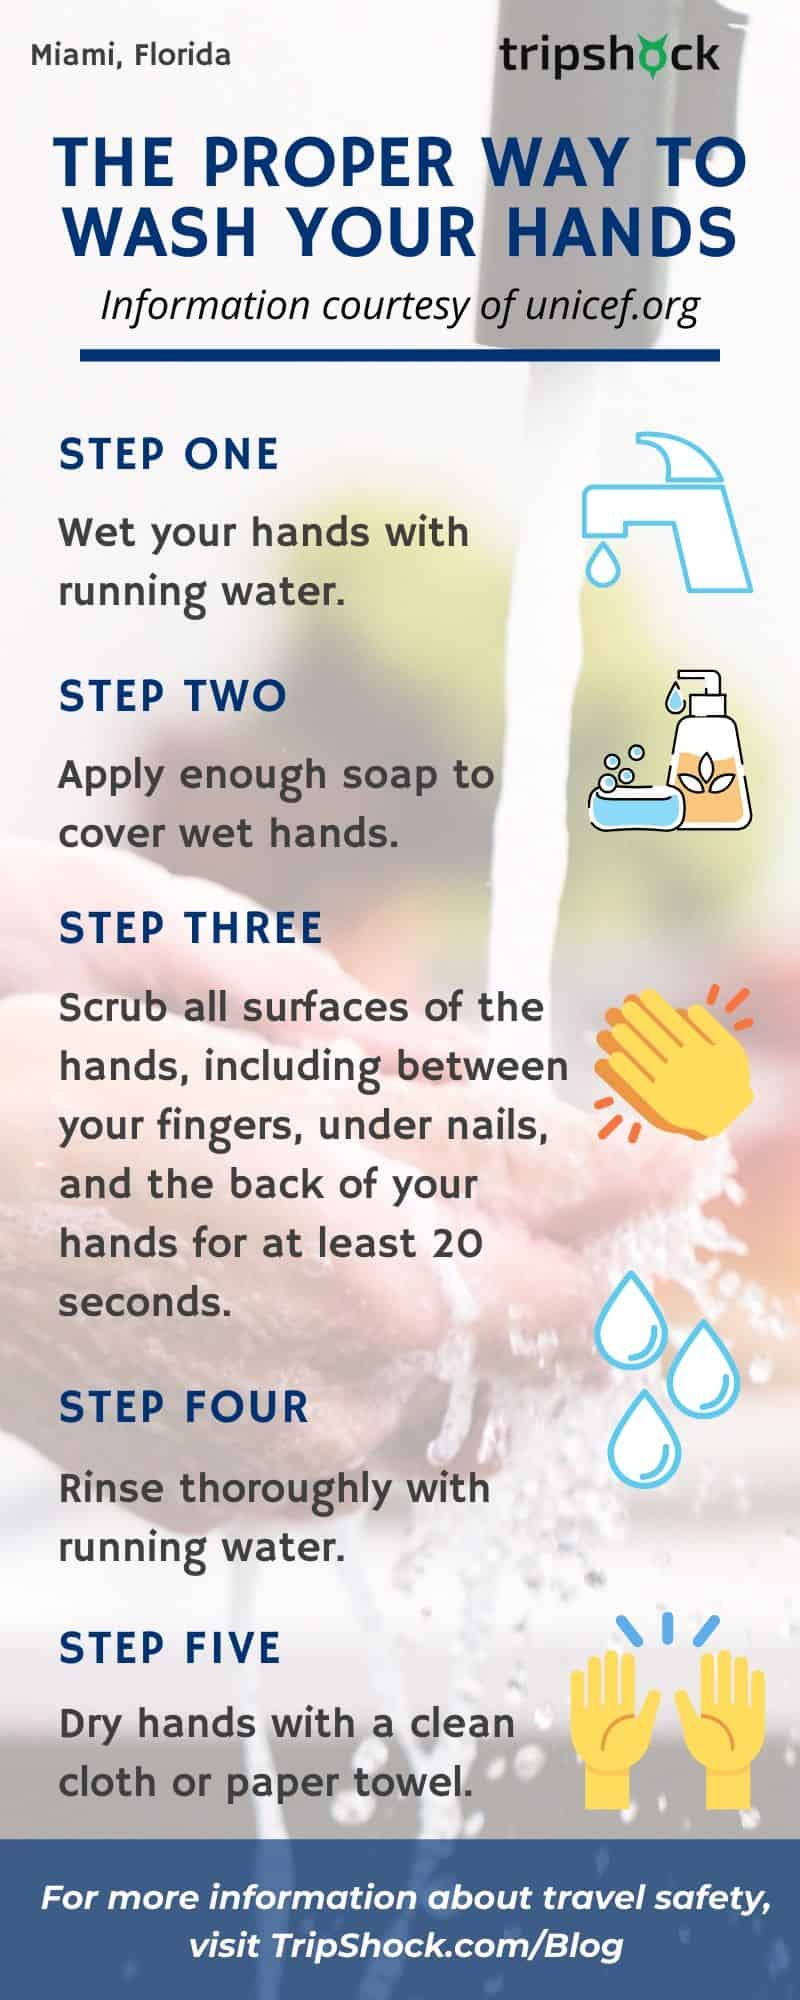 The Proper Way to Wash Your Hands